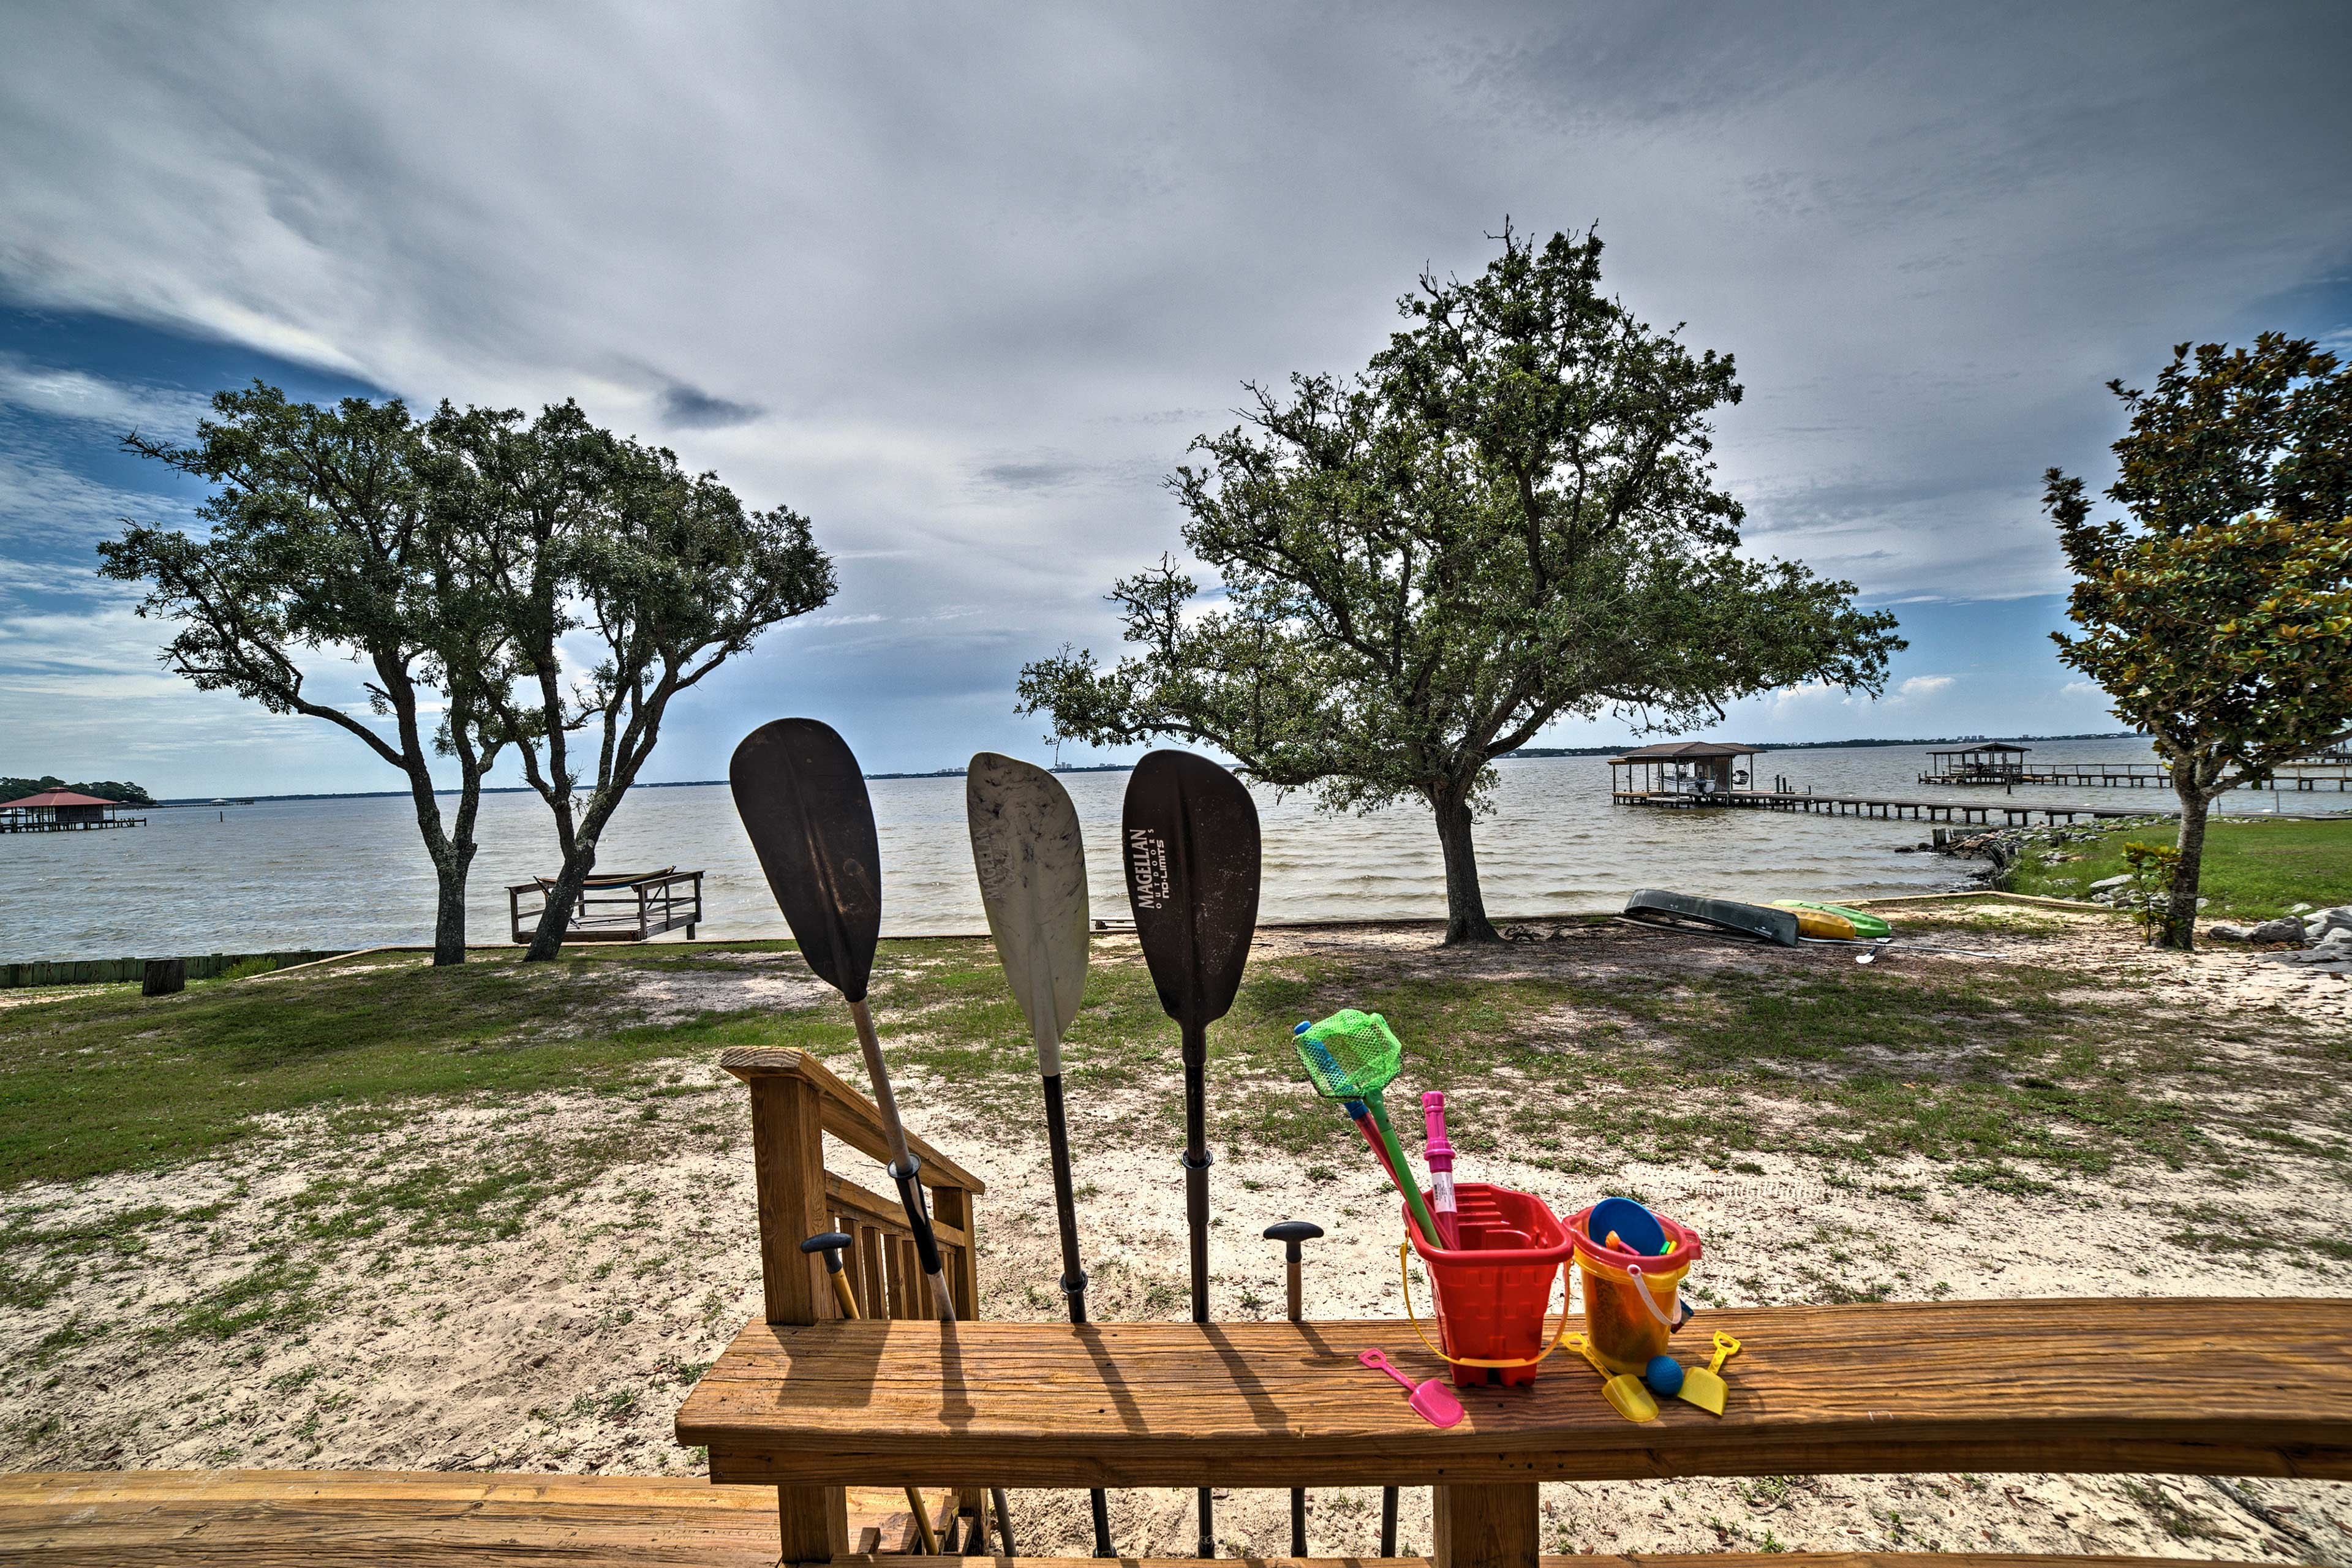 This beach house sleeps 14 and boasts 2 canoes, kayaks, and more.